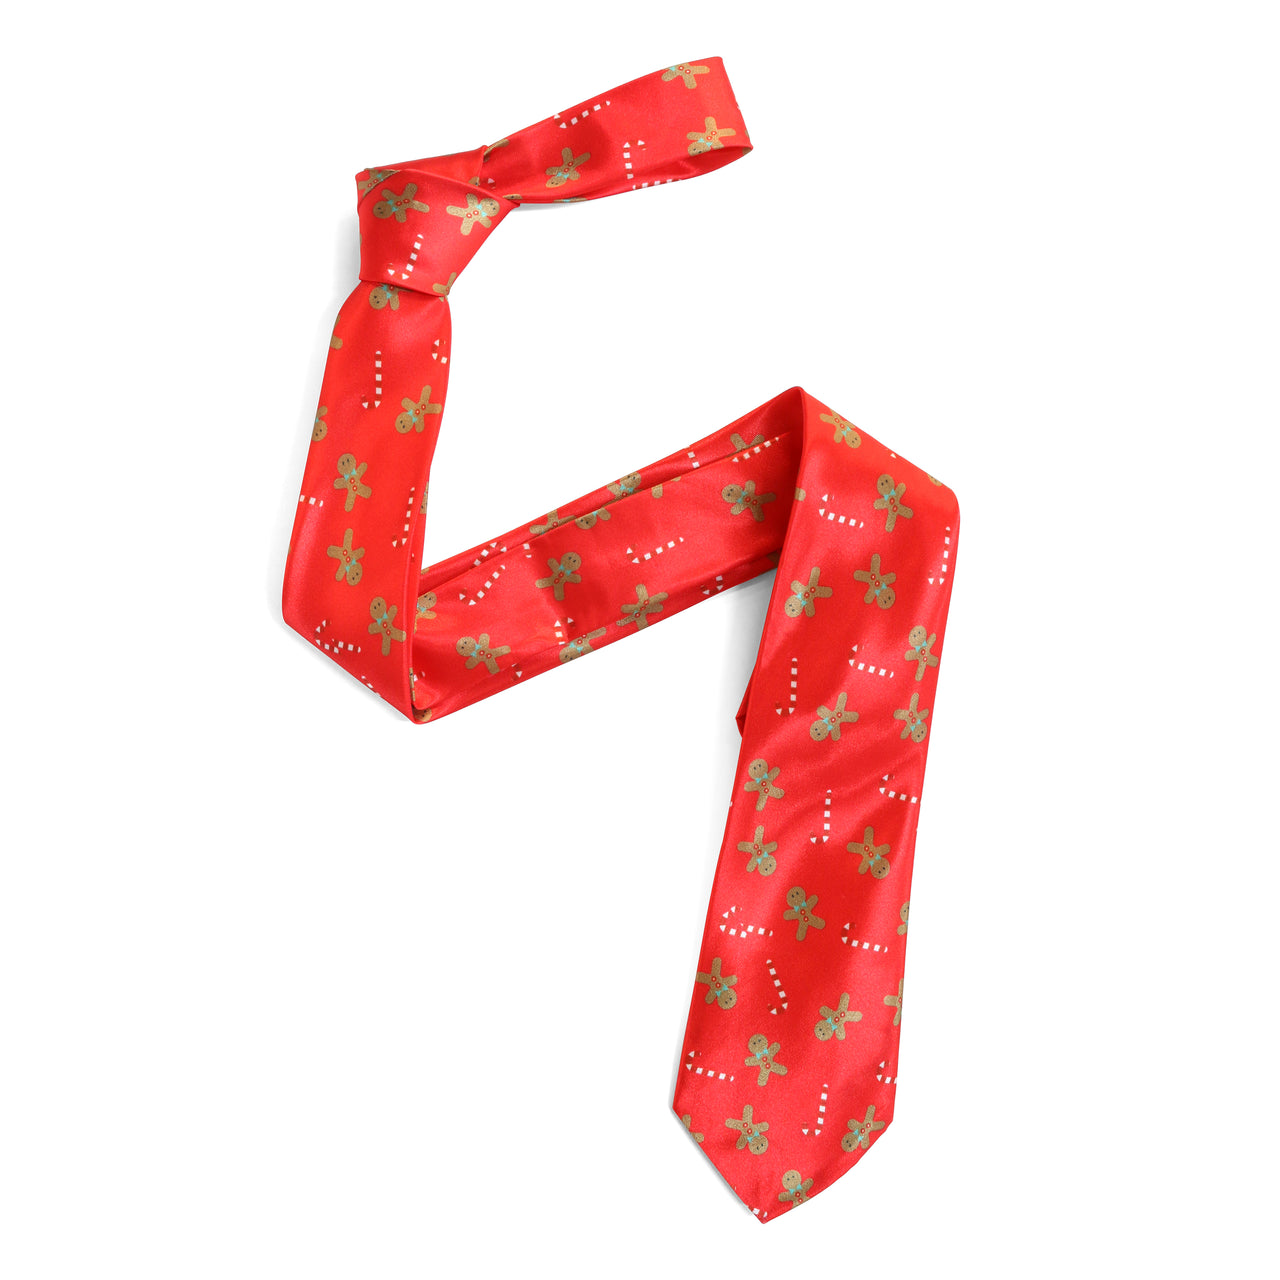 Copy of Christmas Tie - Gingerbread Candy Cane - Red